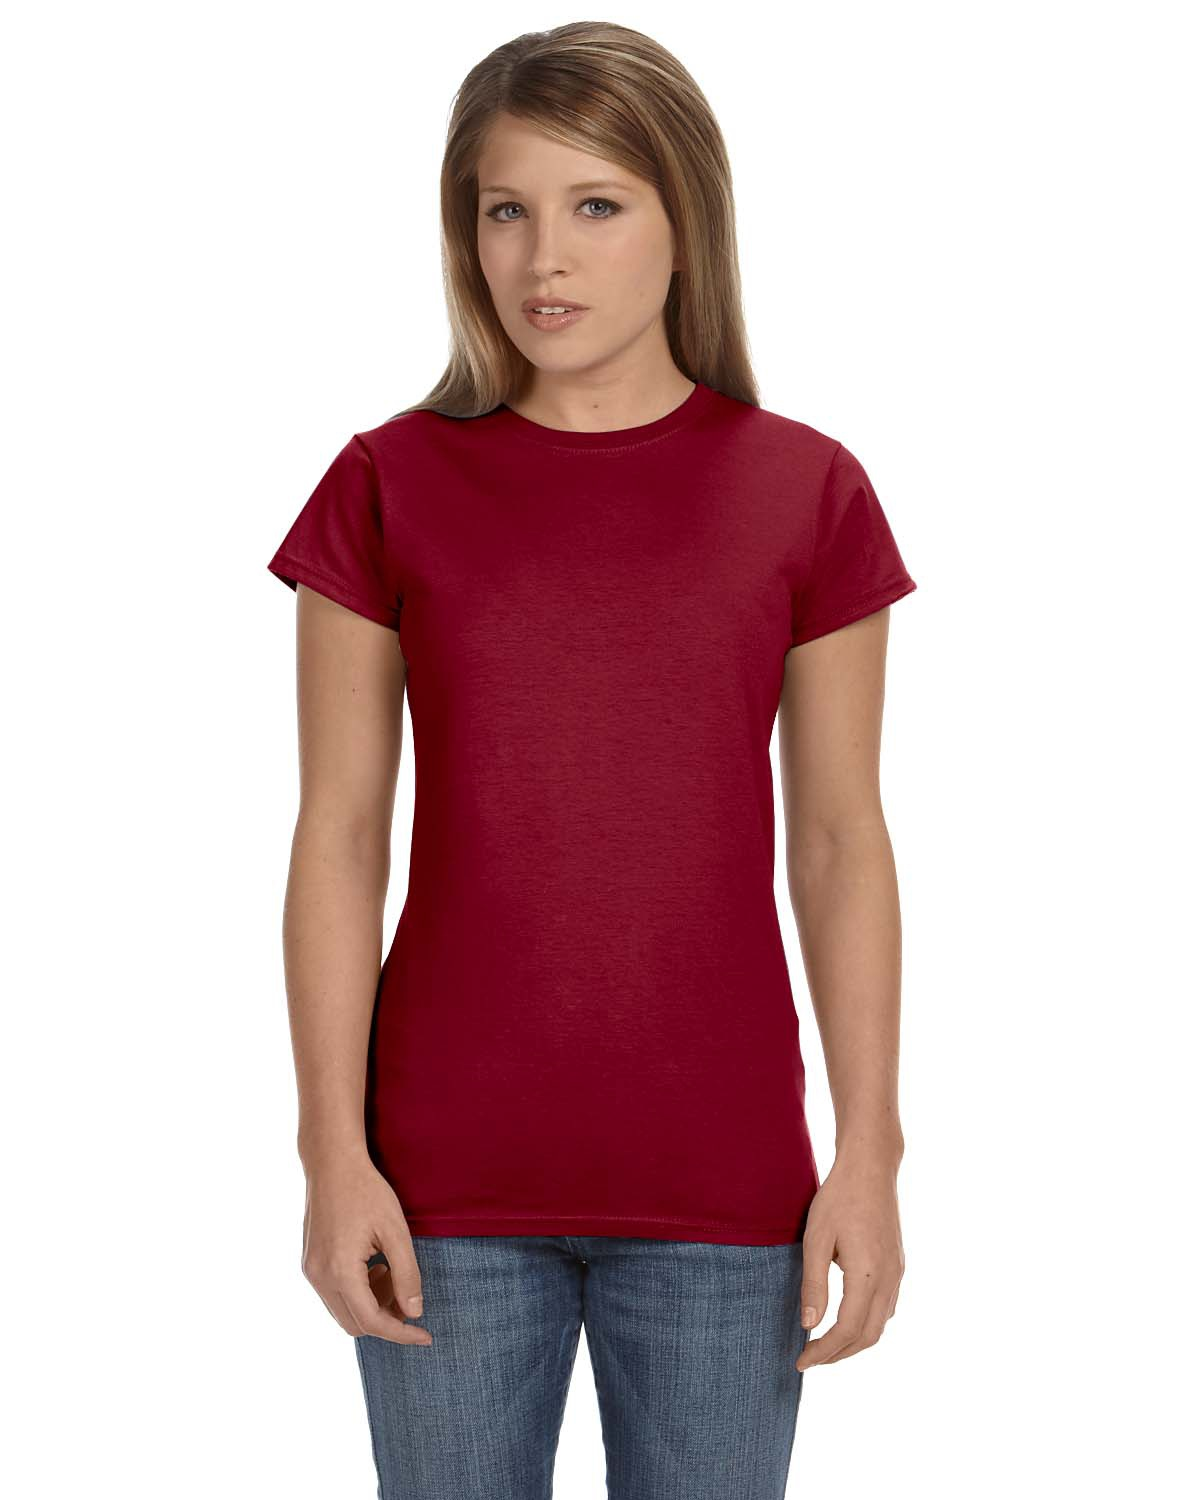 'Gildan G640L Ladies' Softstyle Fitted T-Shirt'